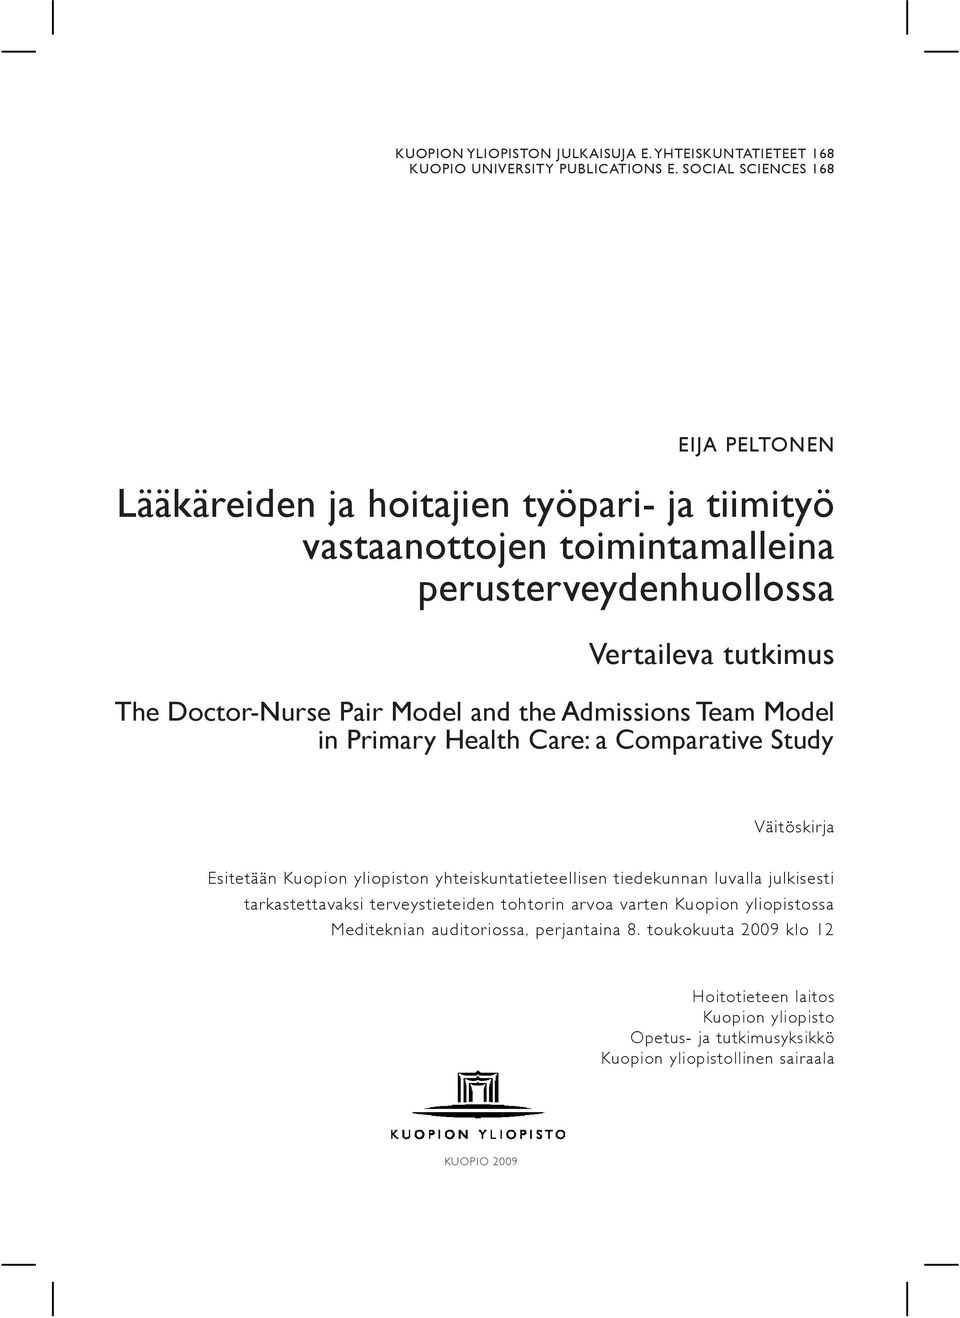 Pair Model and the Admissions Team Model in Primary Health Care: a Comparative Study Väitöskirja Esitetään Kuopion yliopiston yhteiskuntatieteellisen tiedekunnan luvalla